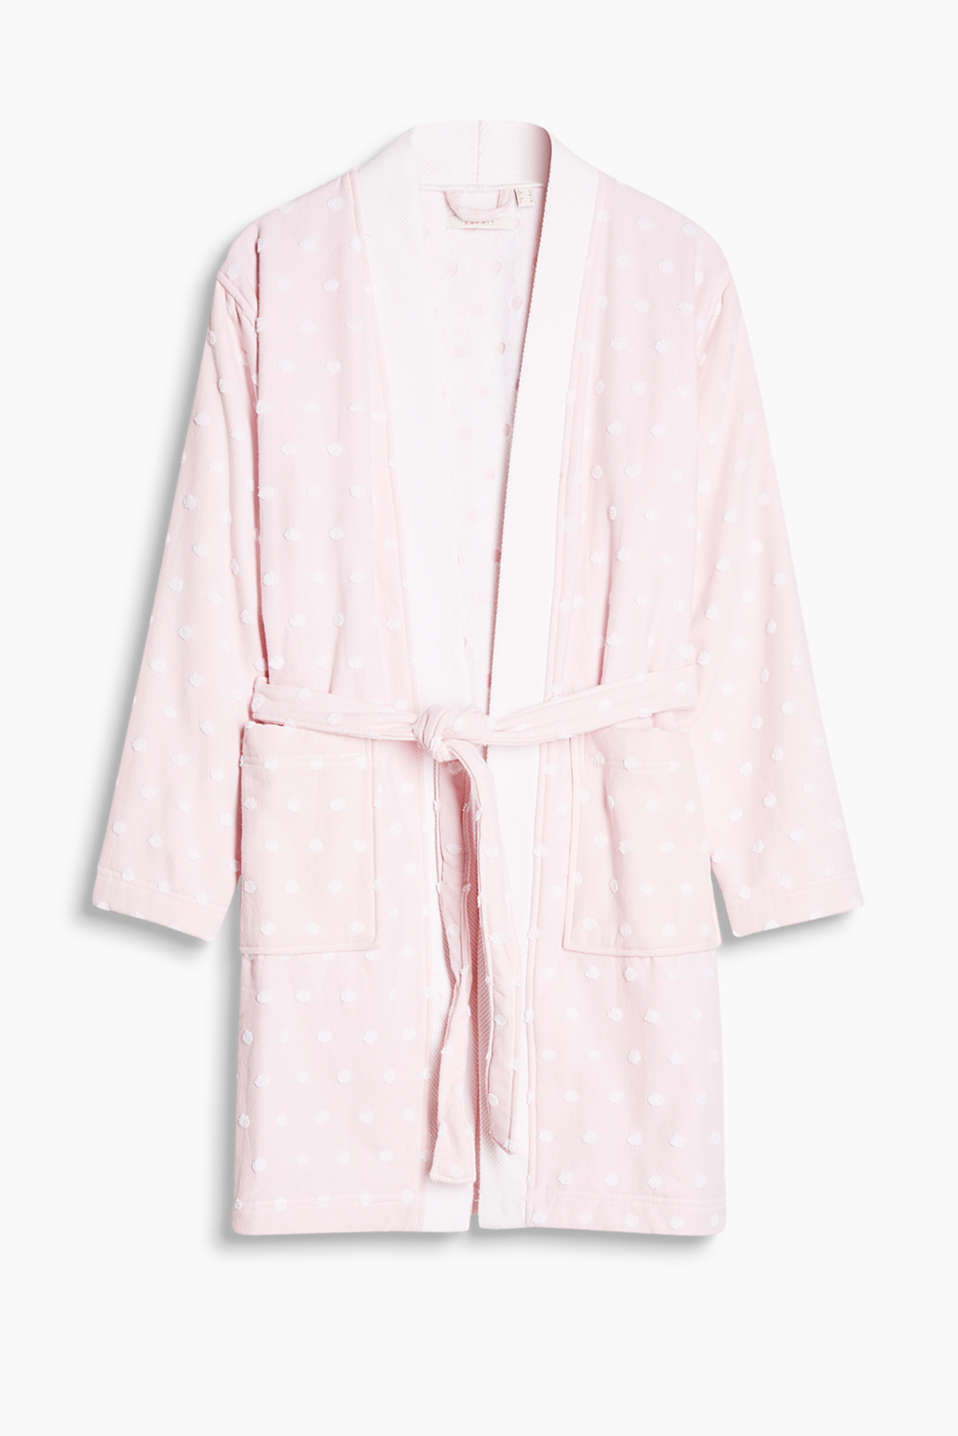 Esprit - Nord bathrobe in 100% cotton